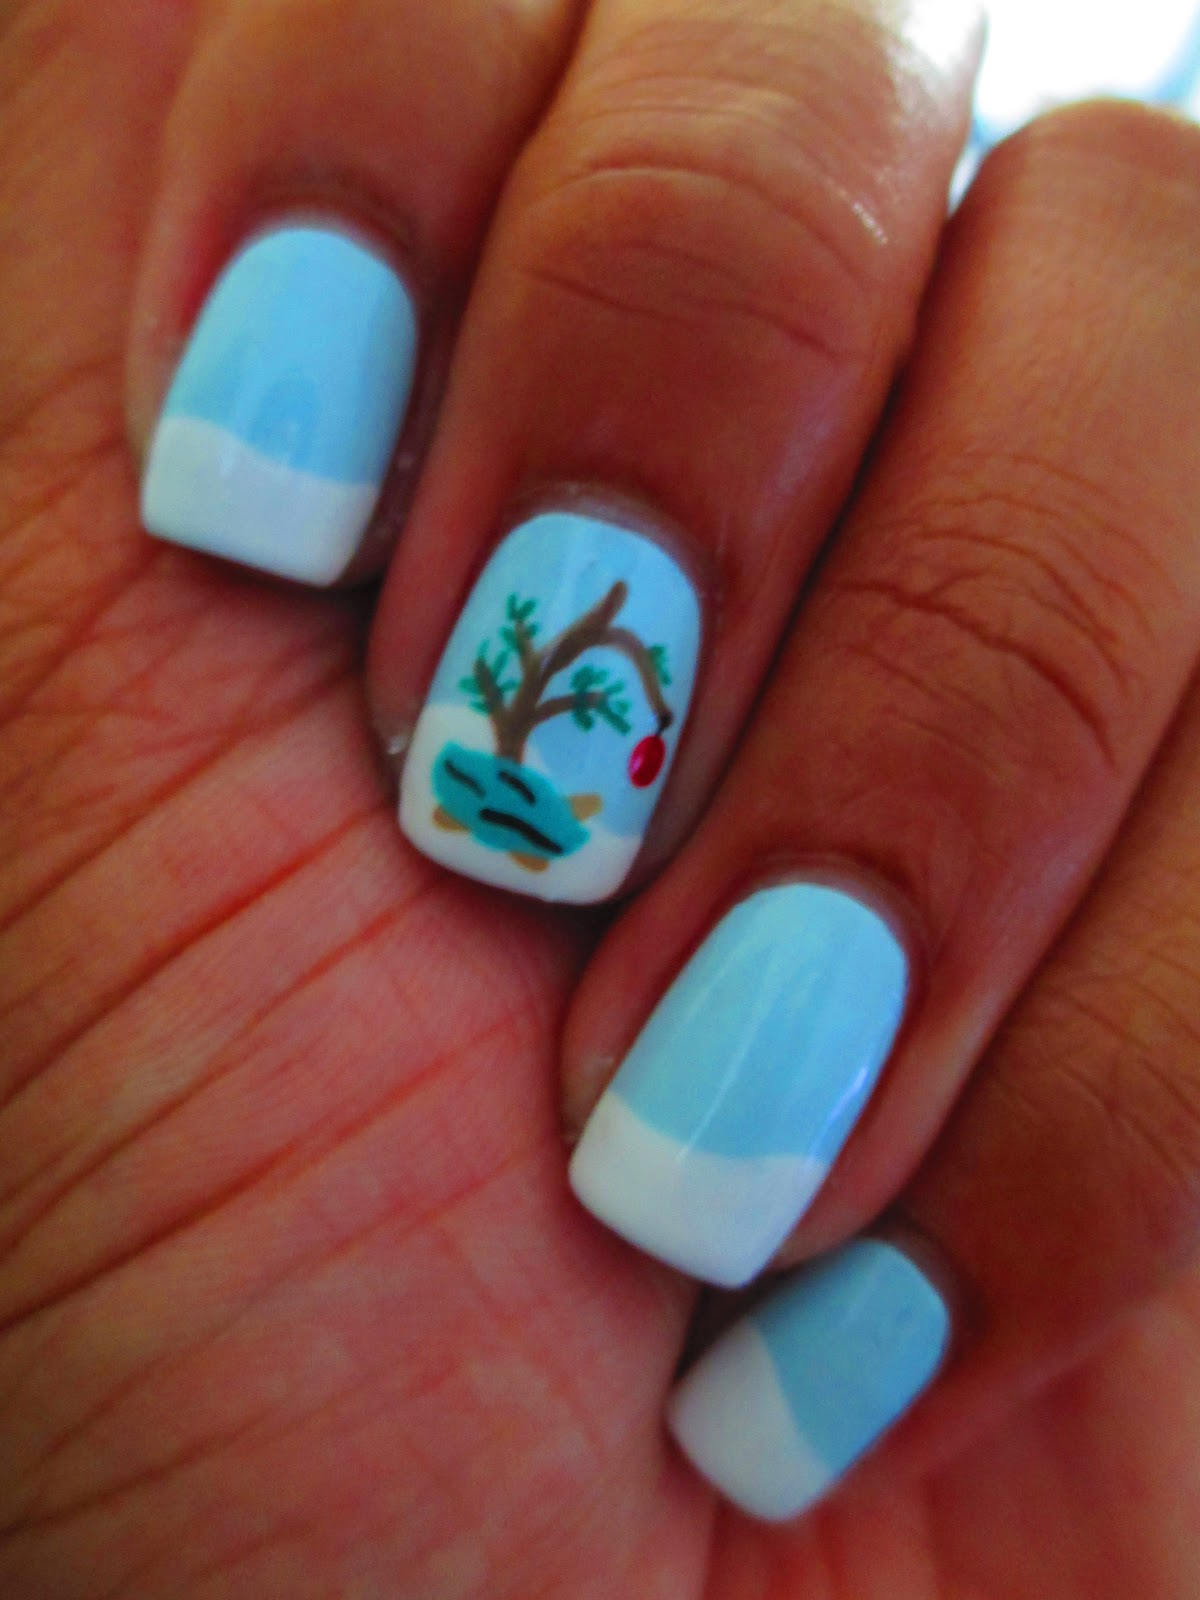 Fairly charming december 2012 christmas charlie brown tree peanuts blue snow nail art nail prinsesfo Gallery